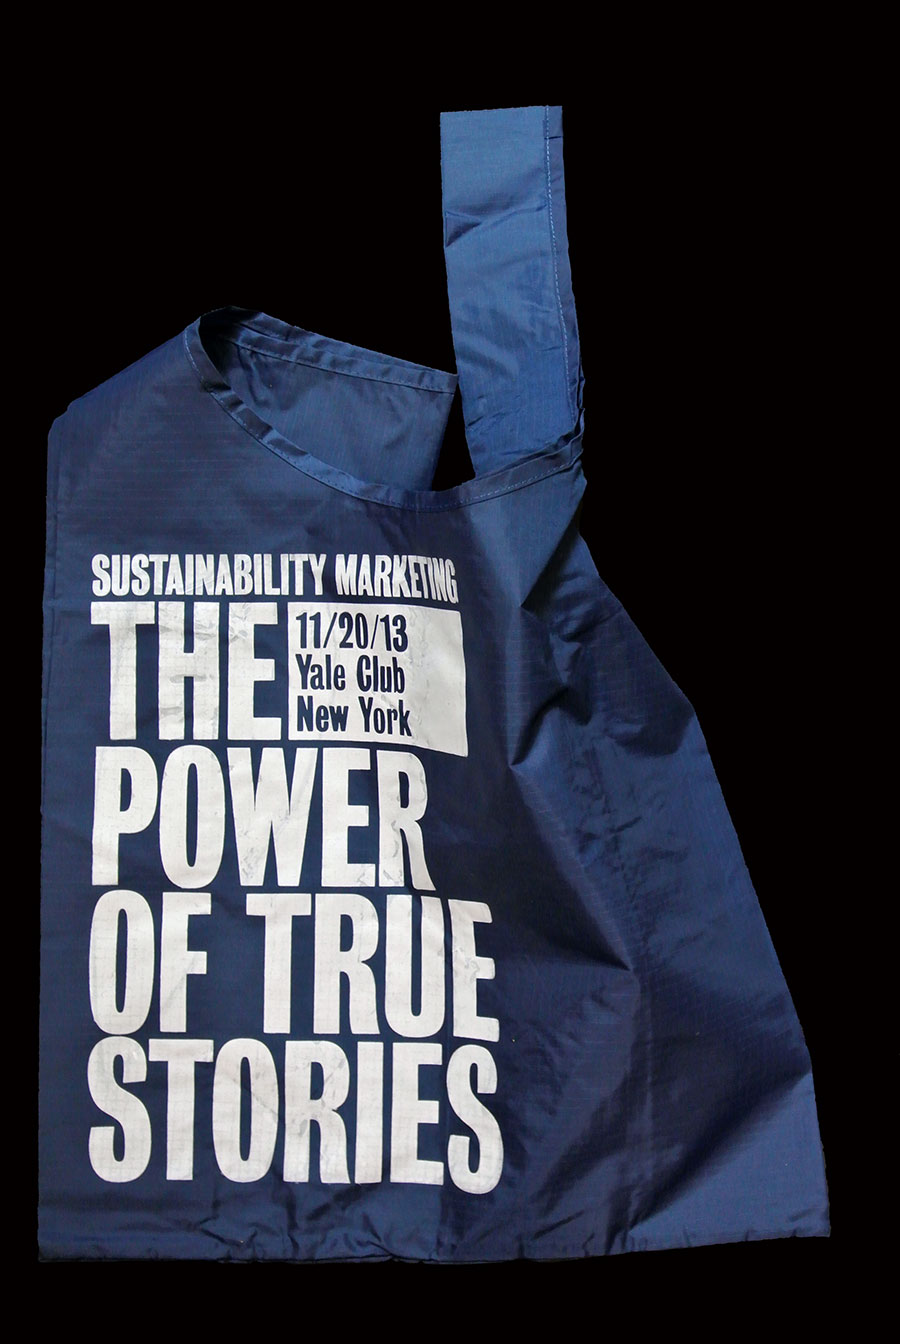 The Power Of True Stories #SMCstories Matt Matthijs van Leeuwen Joseph Han Interbrand Bags